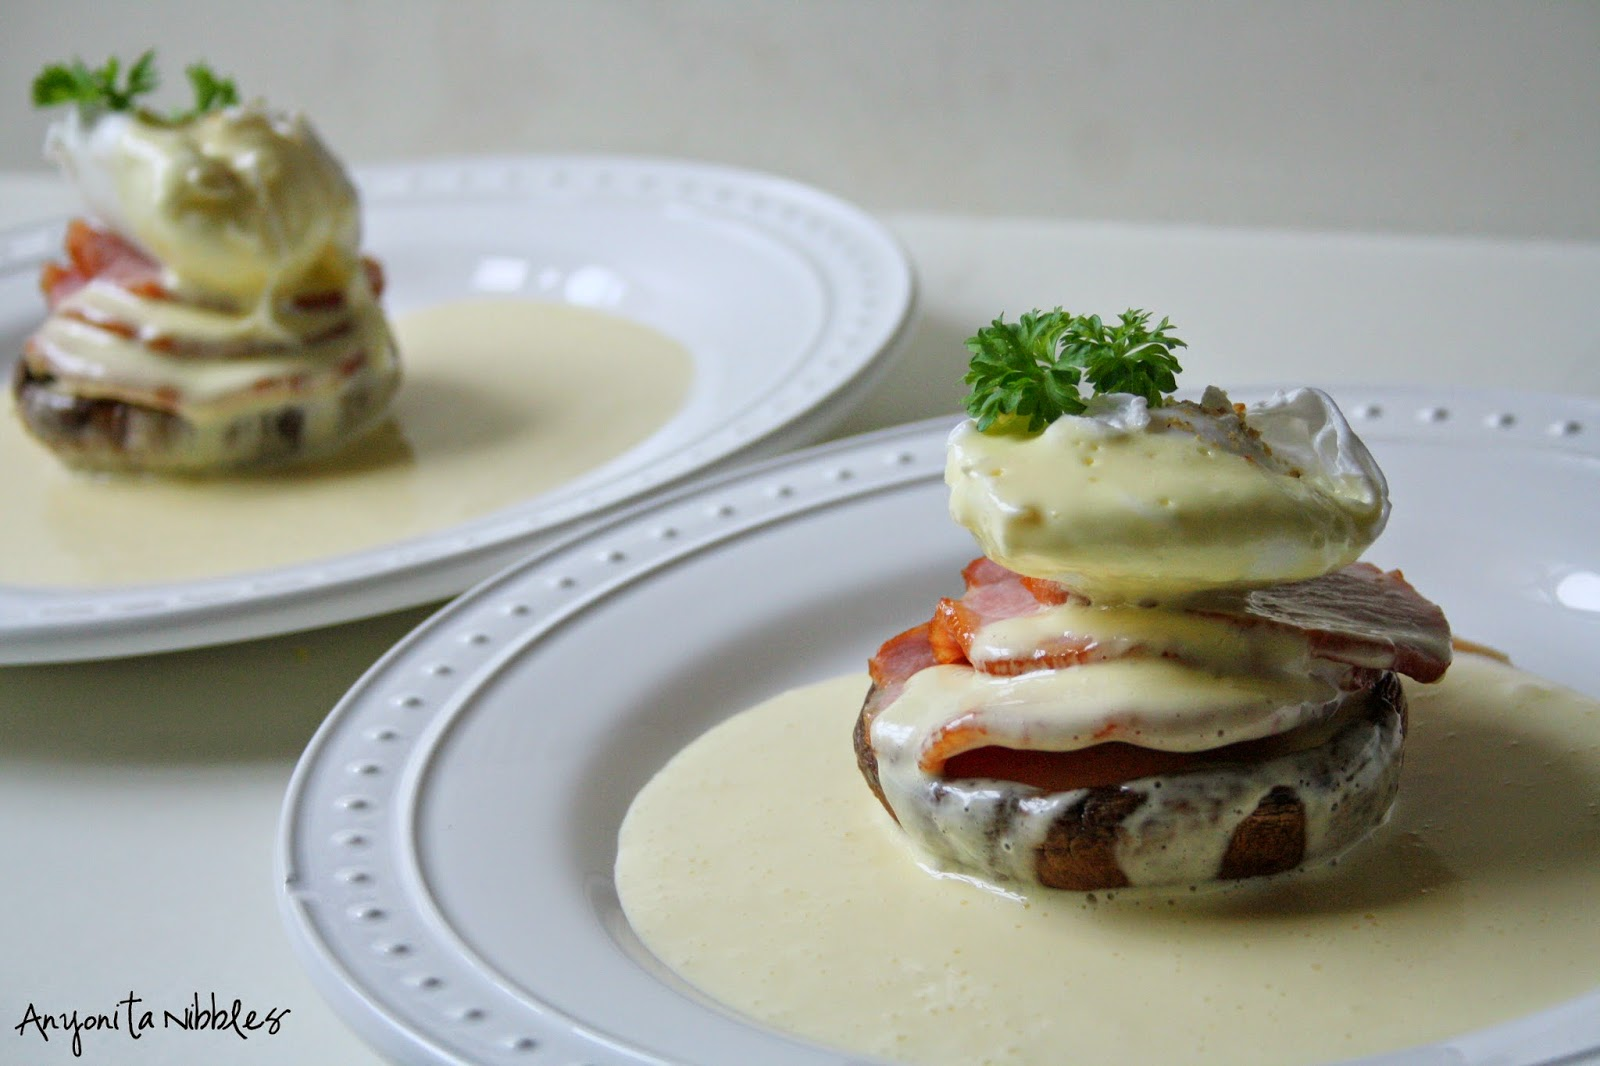 She used grilled portabellos to replace the brioche or English muffins in this eggs Benedict dish and make it gluten free from Anyonita Nibbles